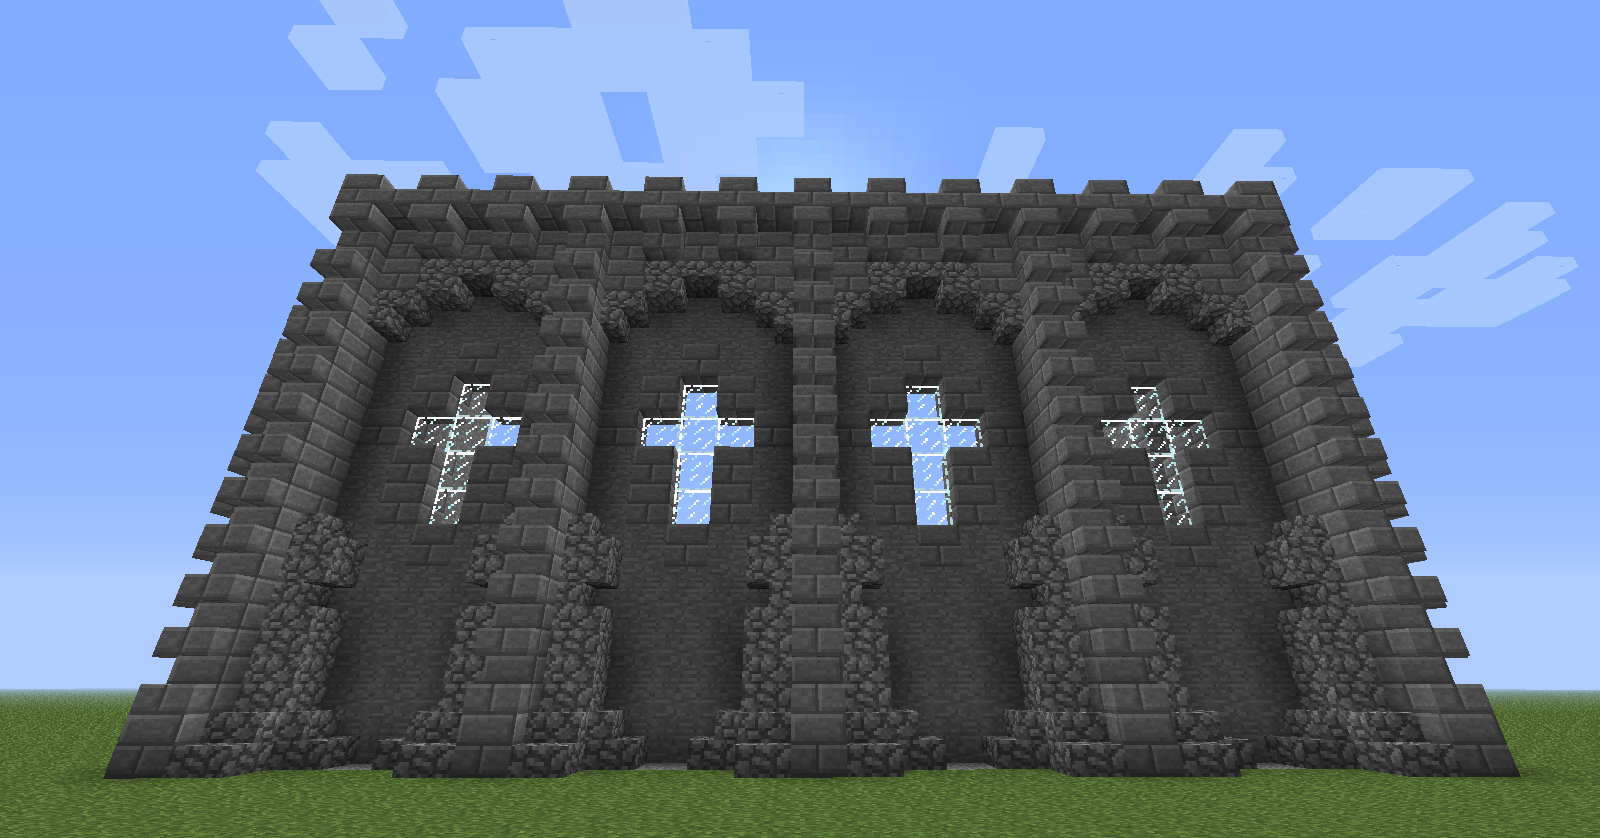 Minecraft castle wall design minecraft seeds minecraft Design a castle online